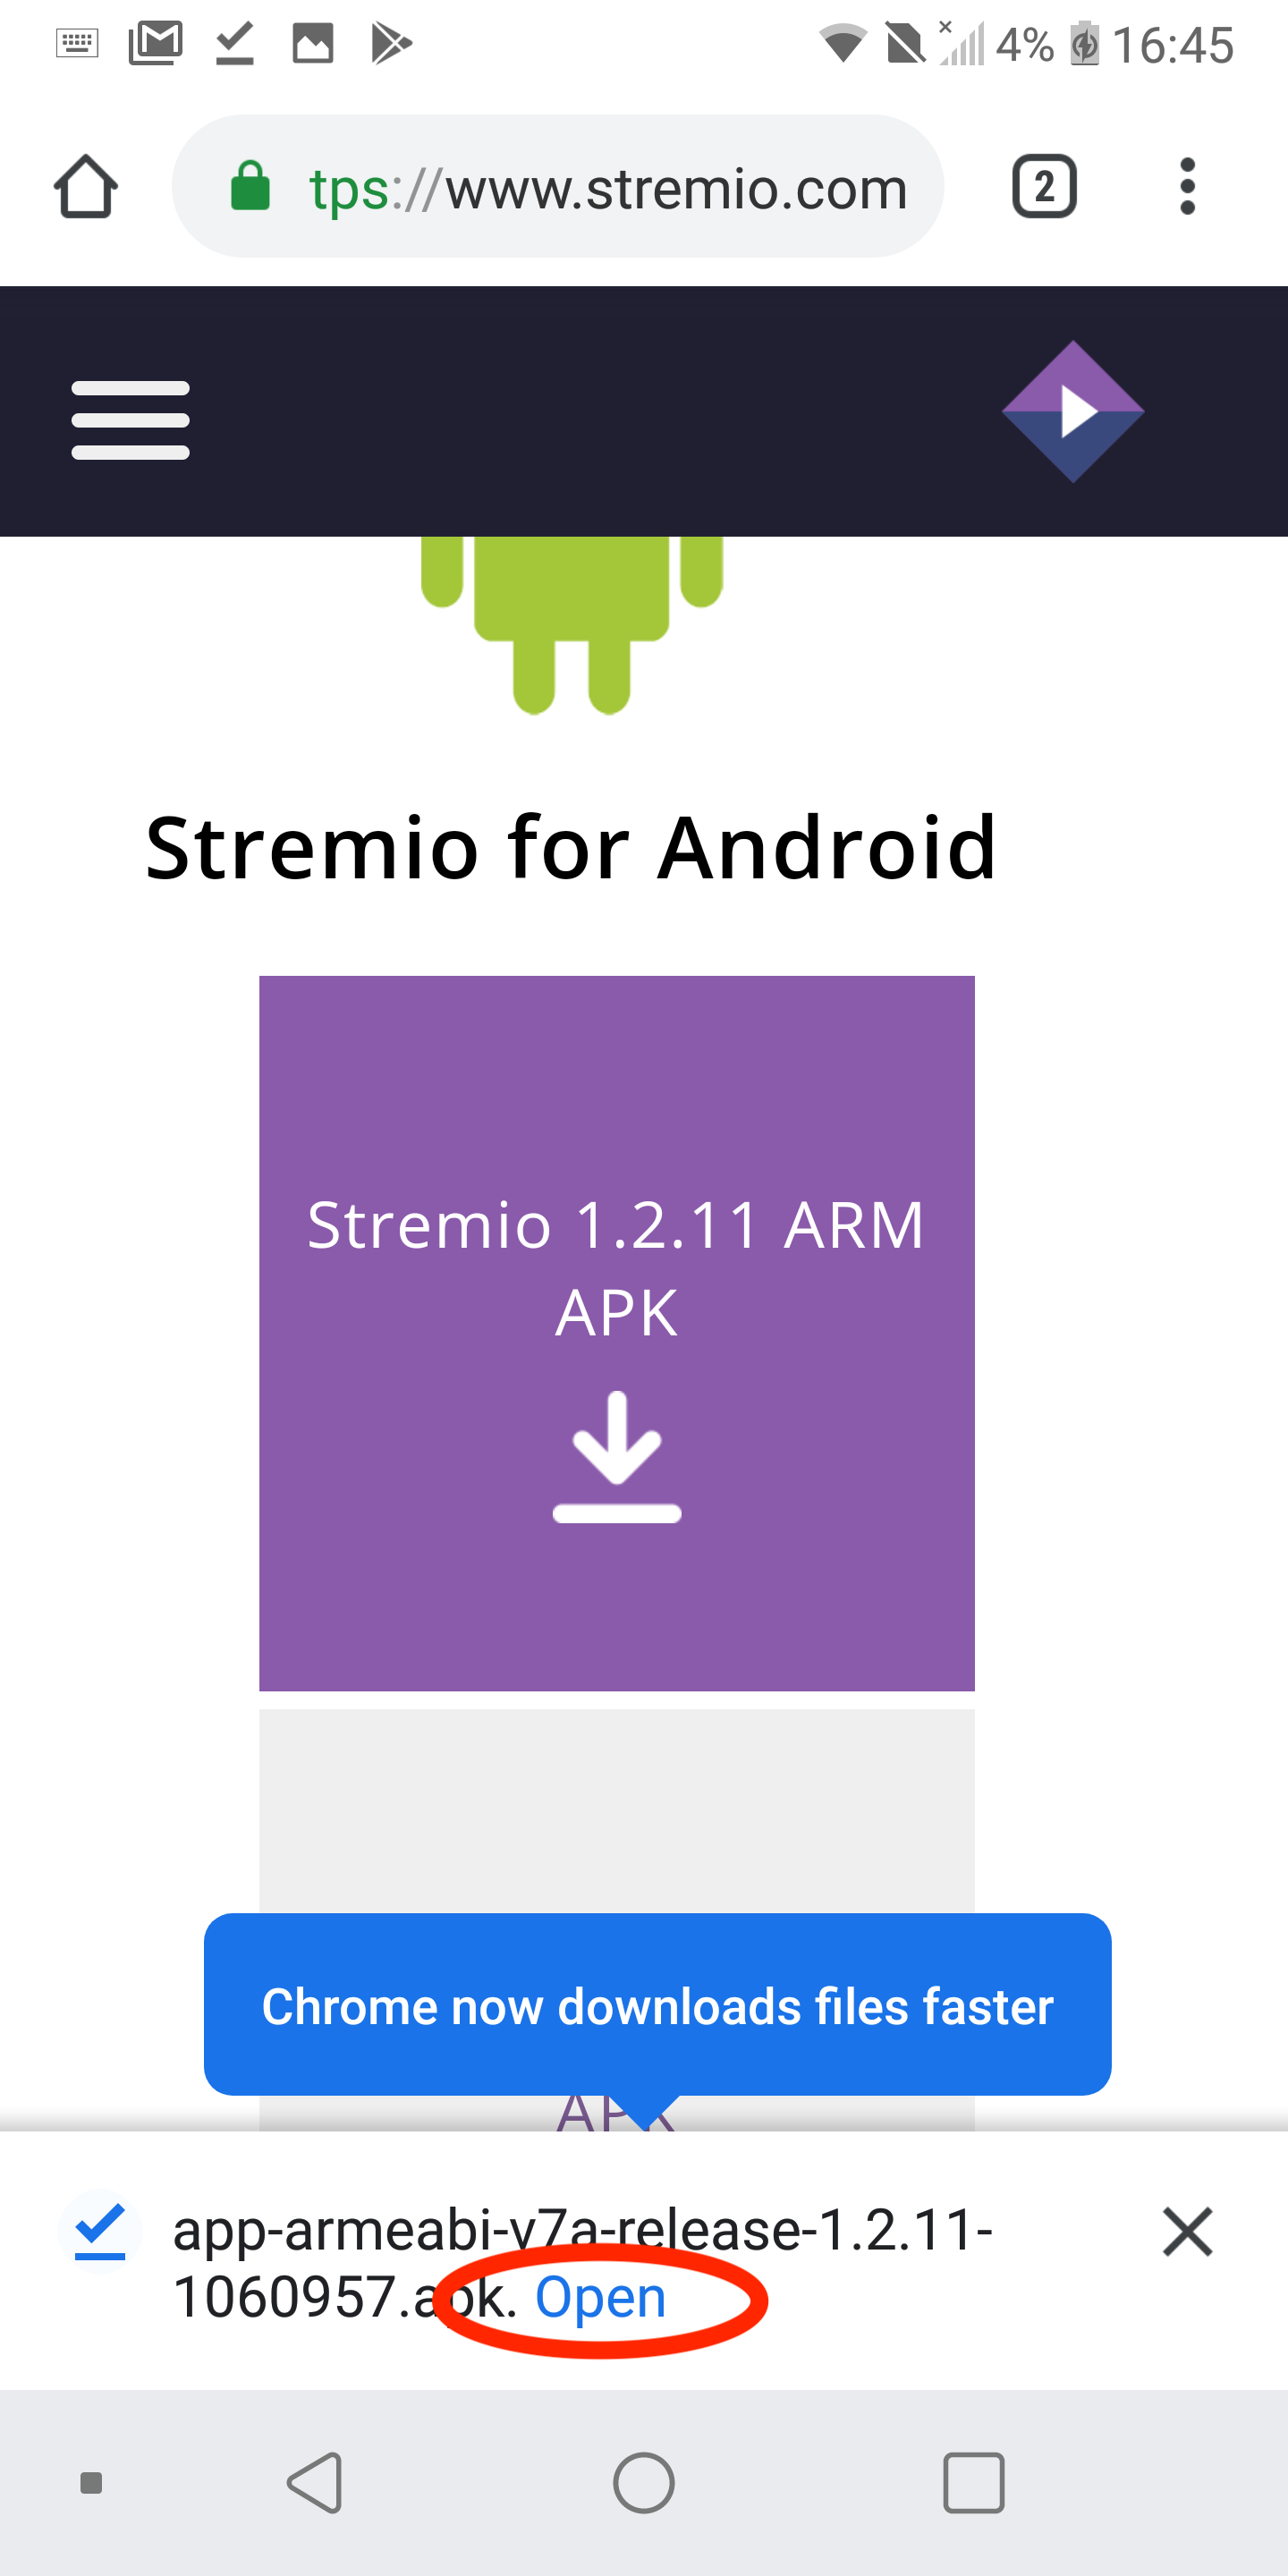 How to install the Stremio APK on Android [Step-by-step